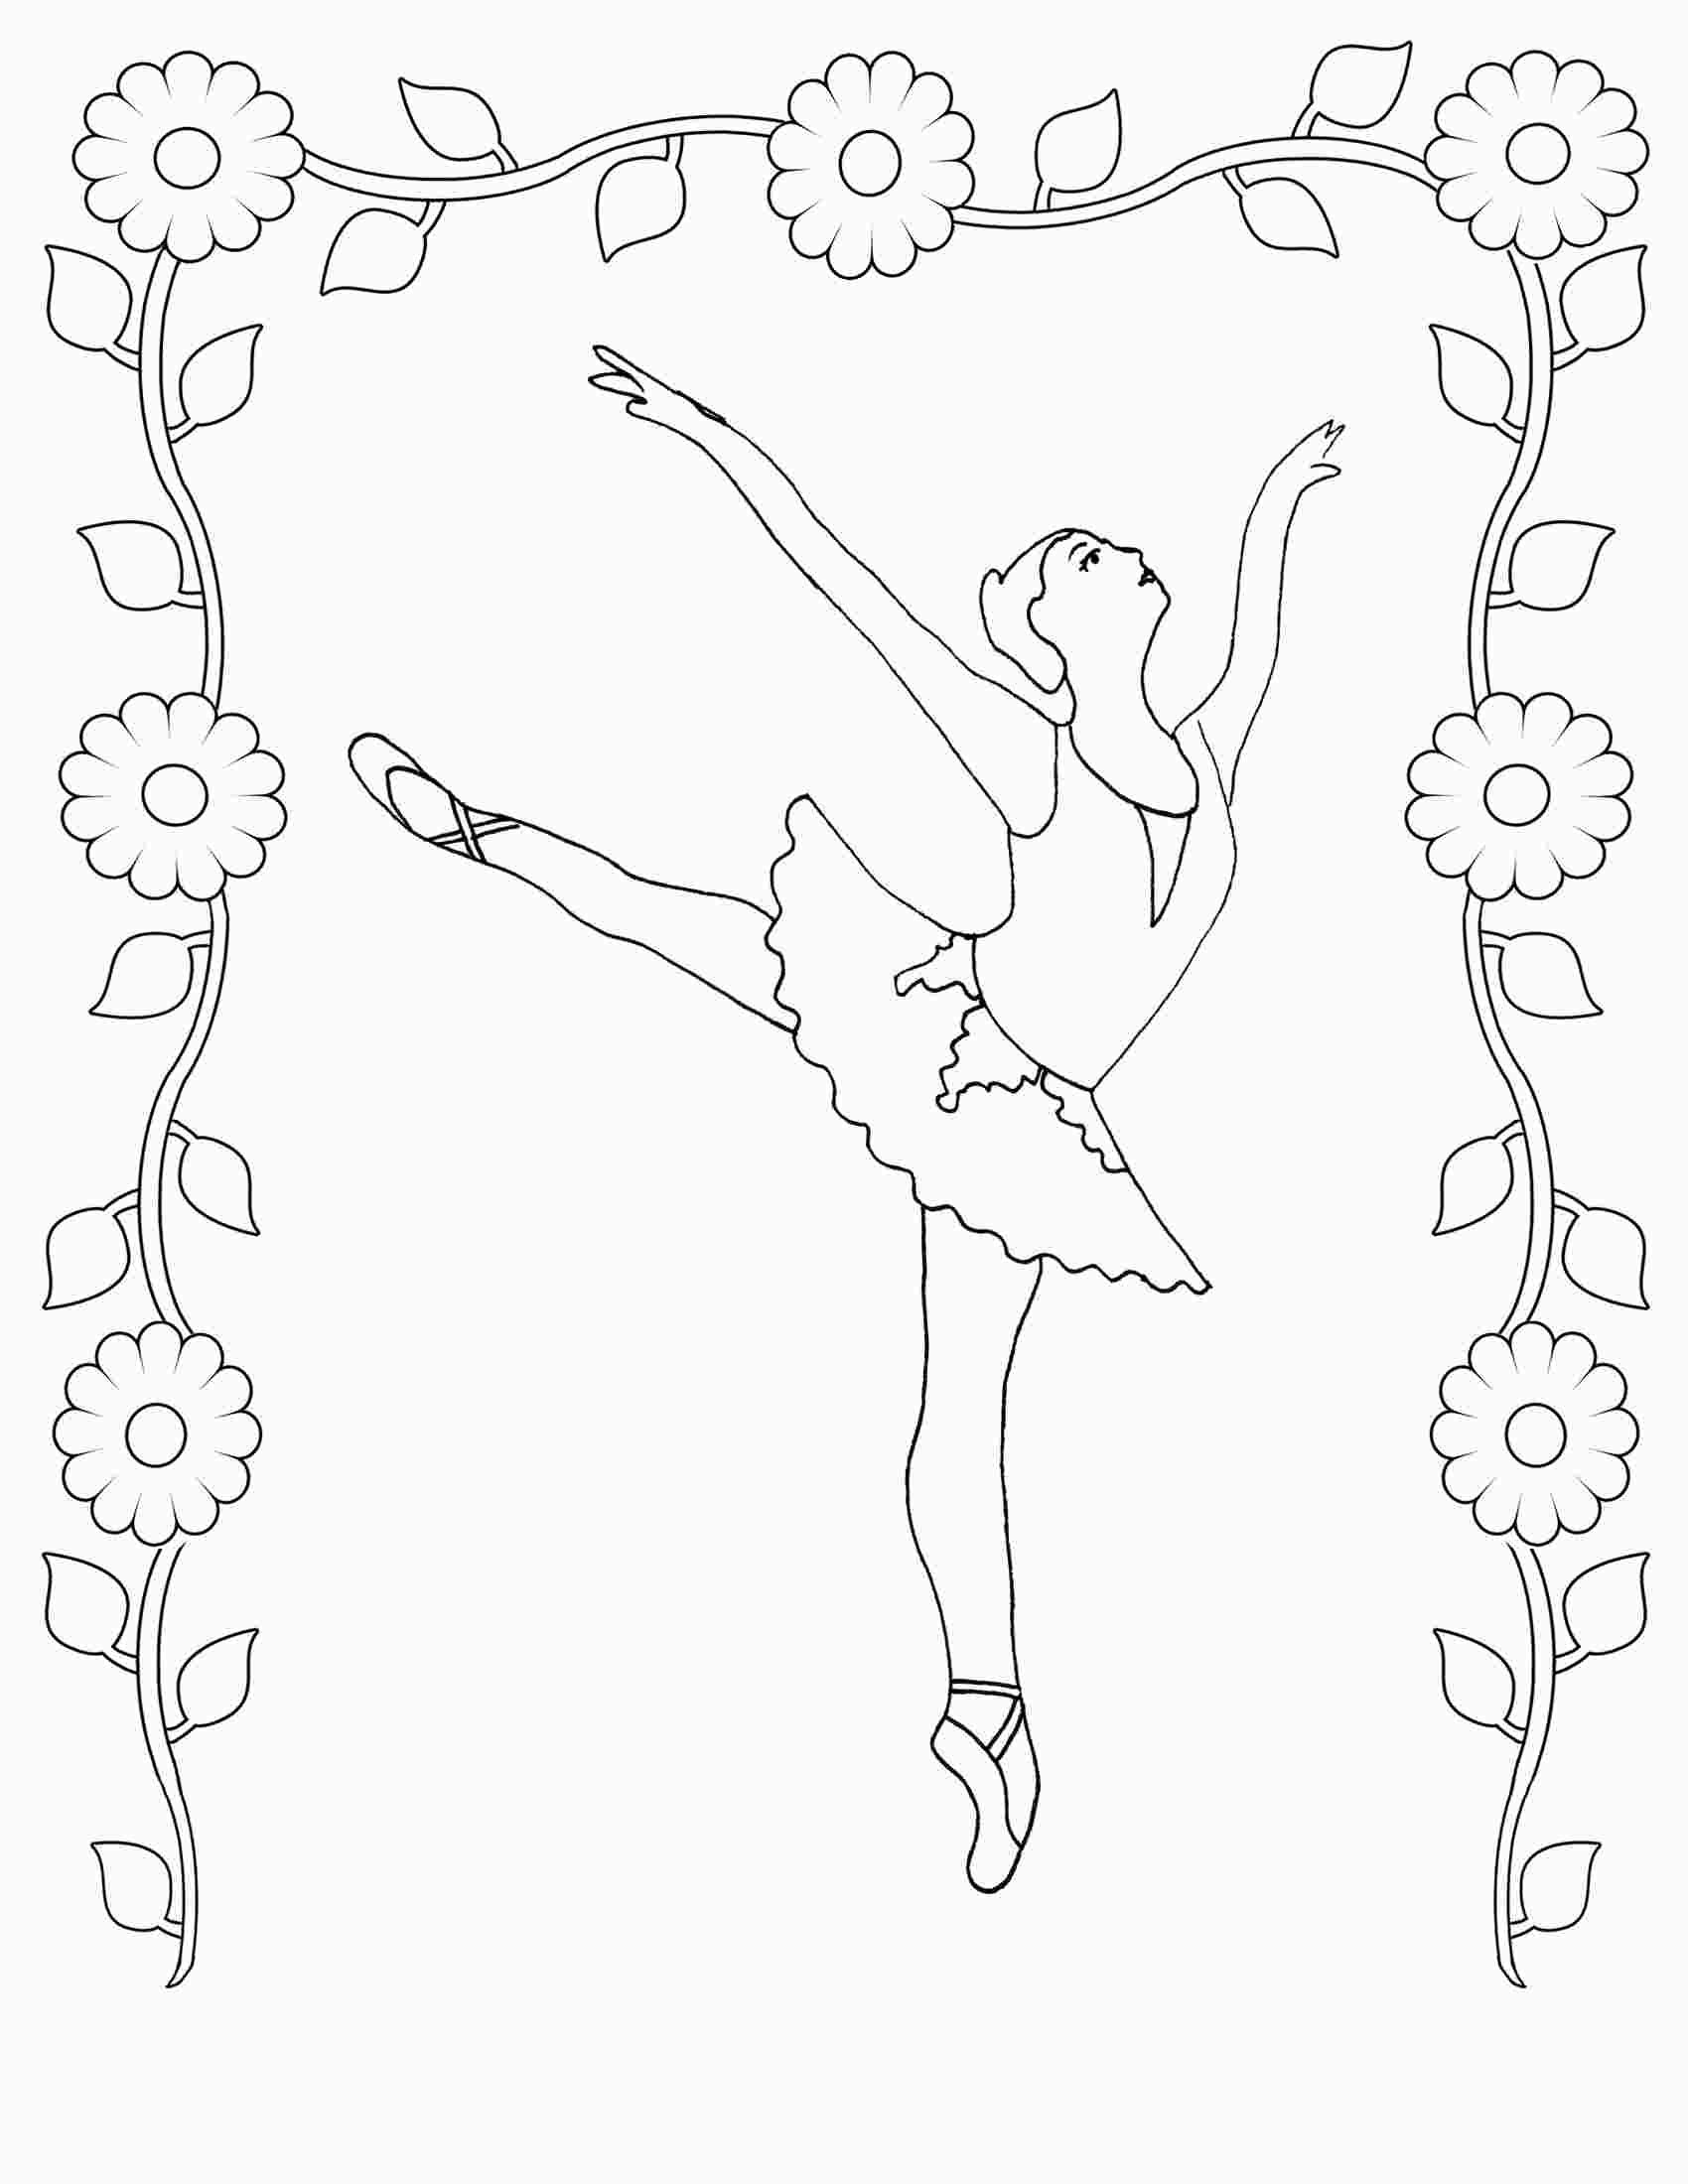 Ballet Dancer Coloring Page In 2020 Dance Coloring Pages